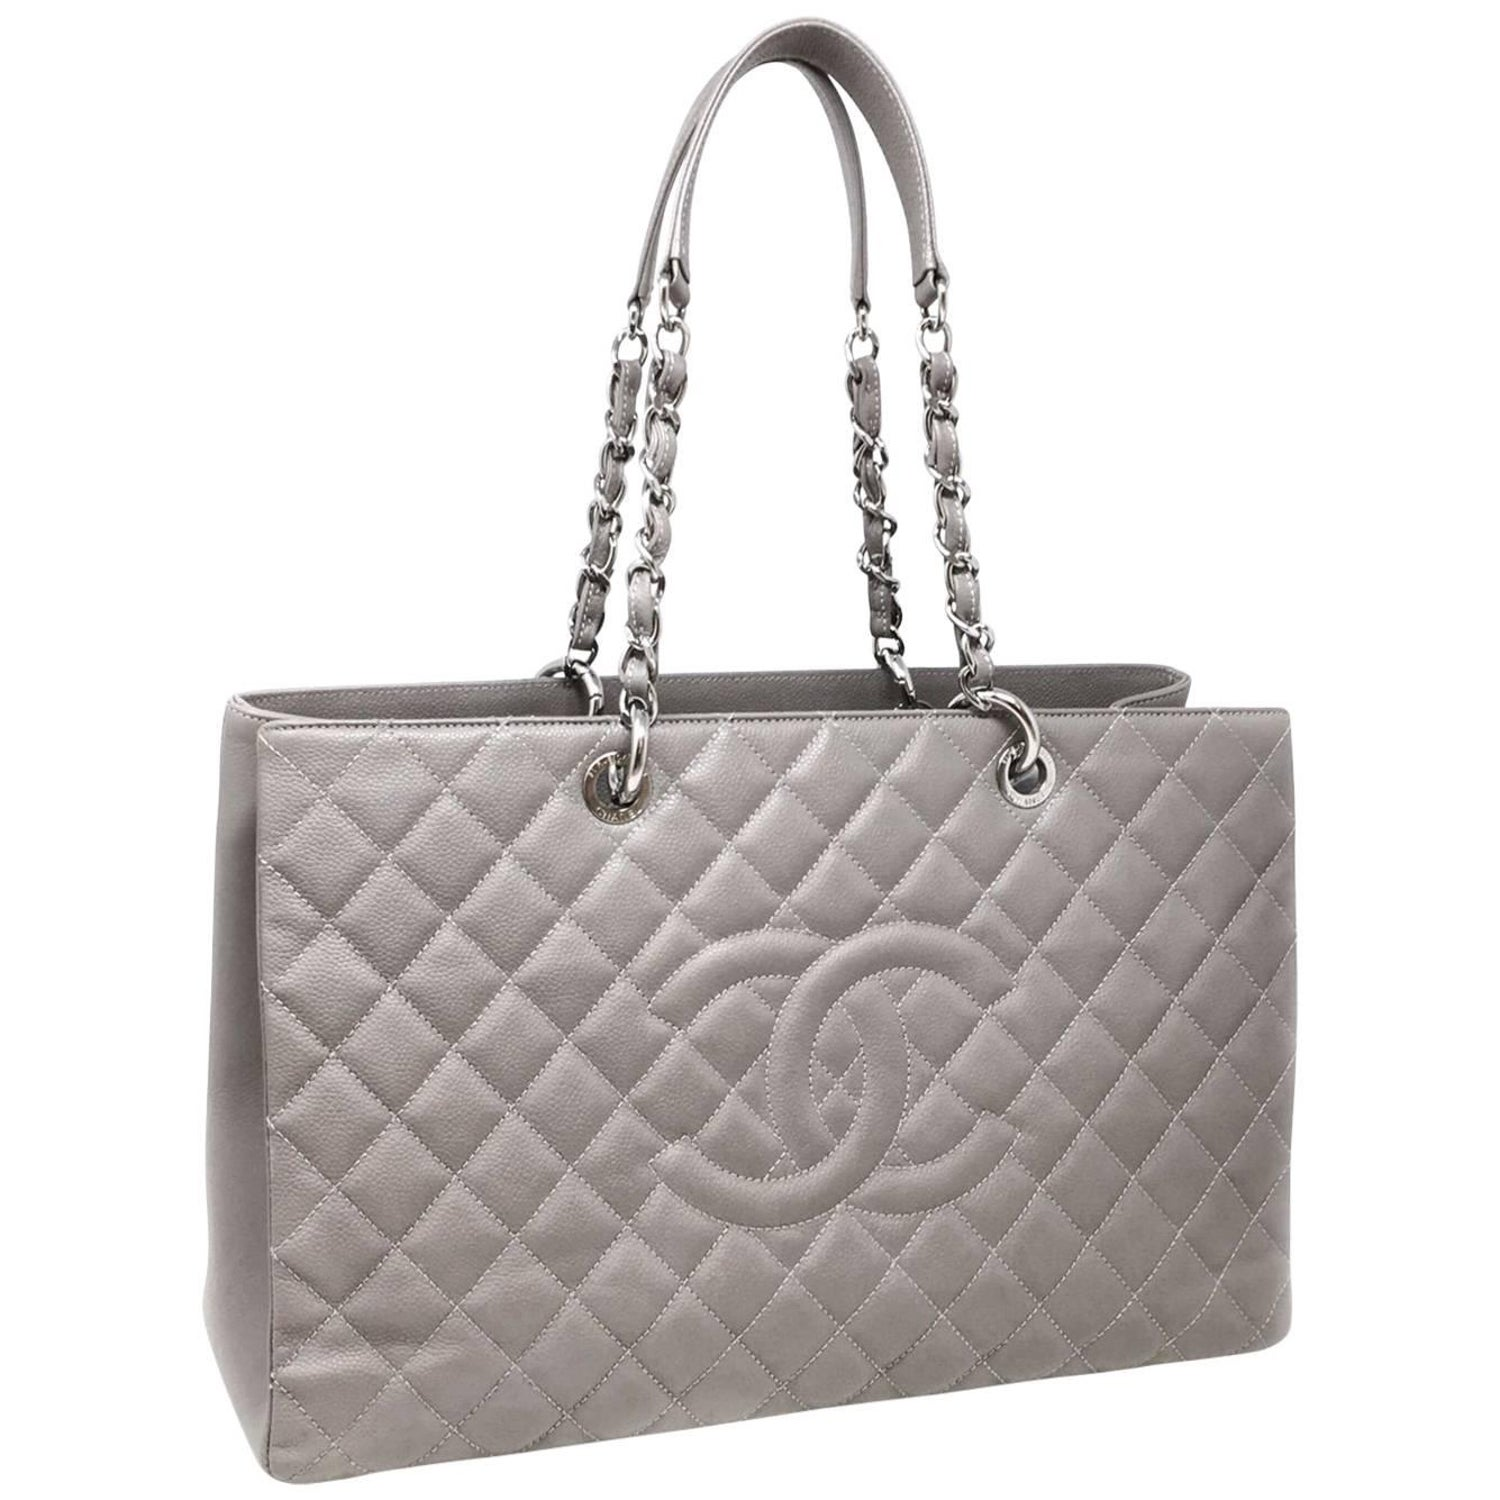 35886dbe3575c7 Chanel Grey Caviar Maxi GST Shopping Tote Chain Shoulder Bag, 2012 at  1stdibs